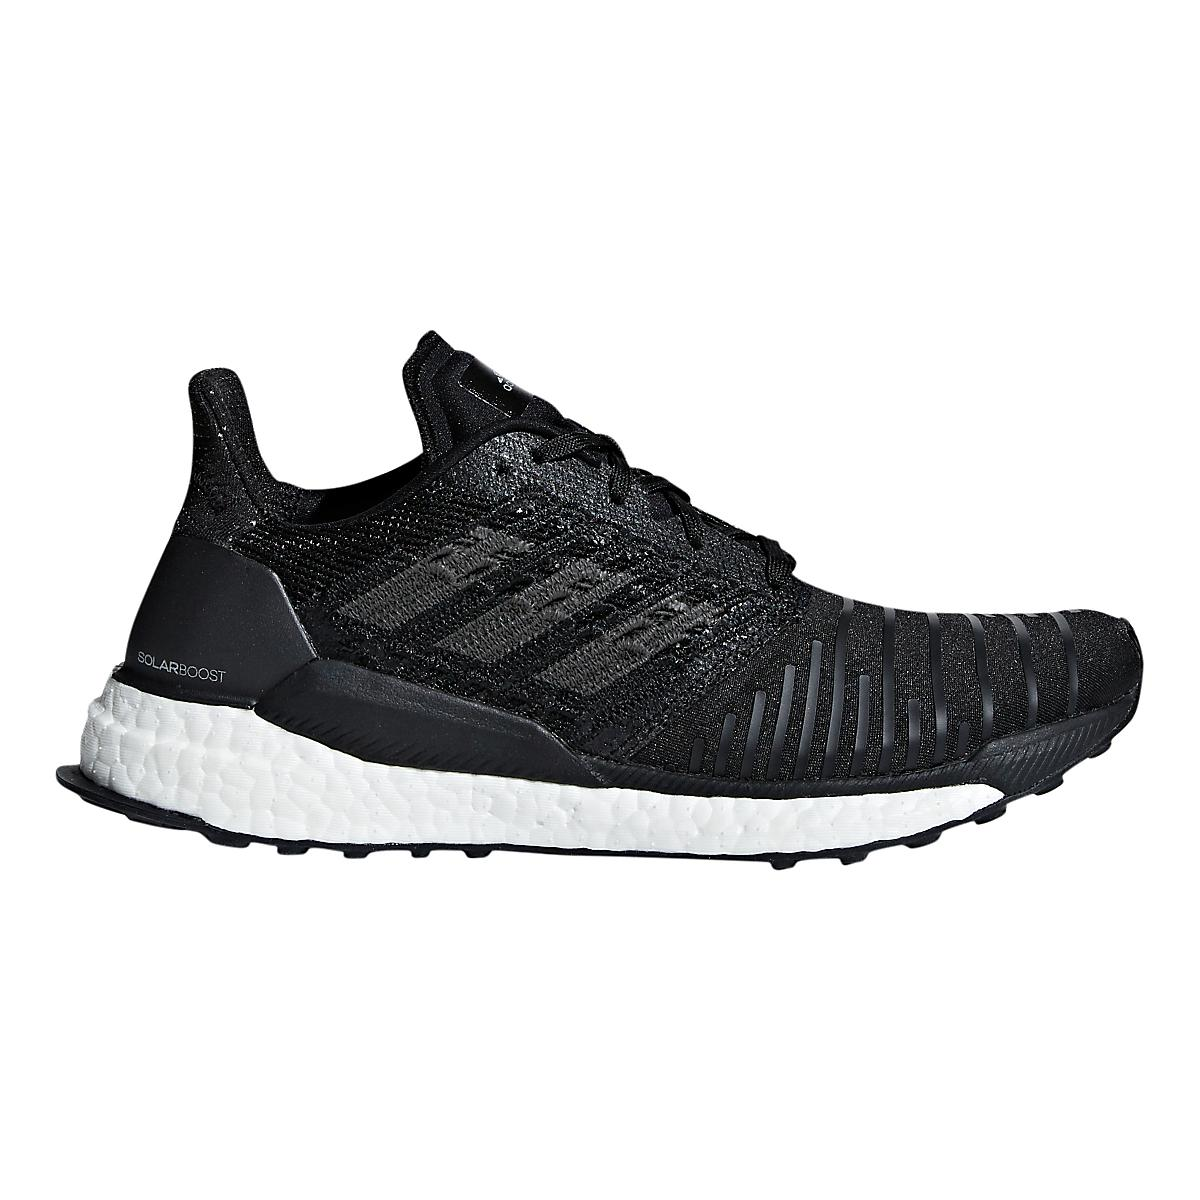 brand new 5a120 88318 Womens adidas Solar Boost Running Shoe at Road Runner Sports